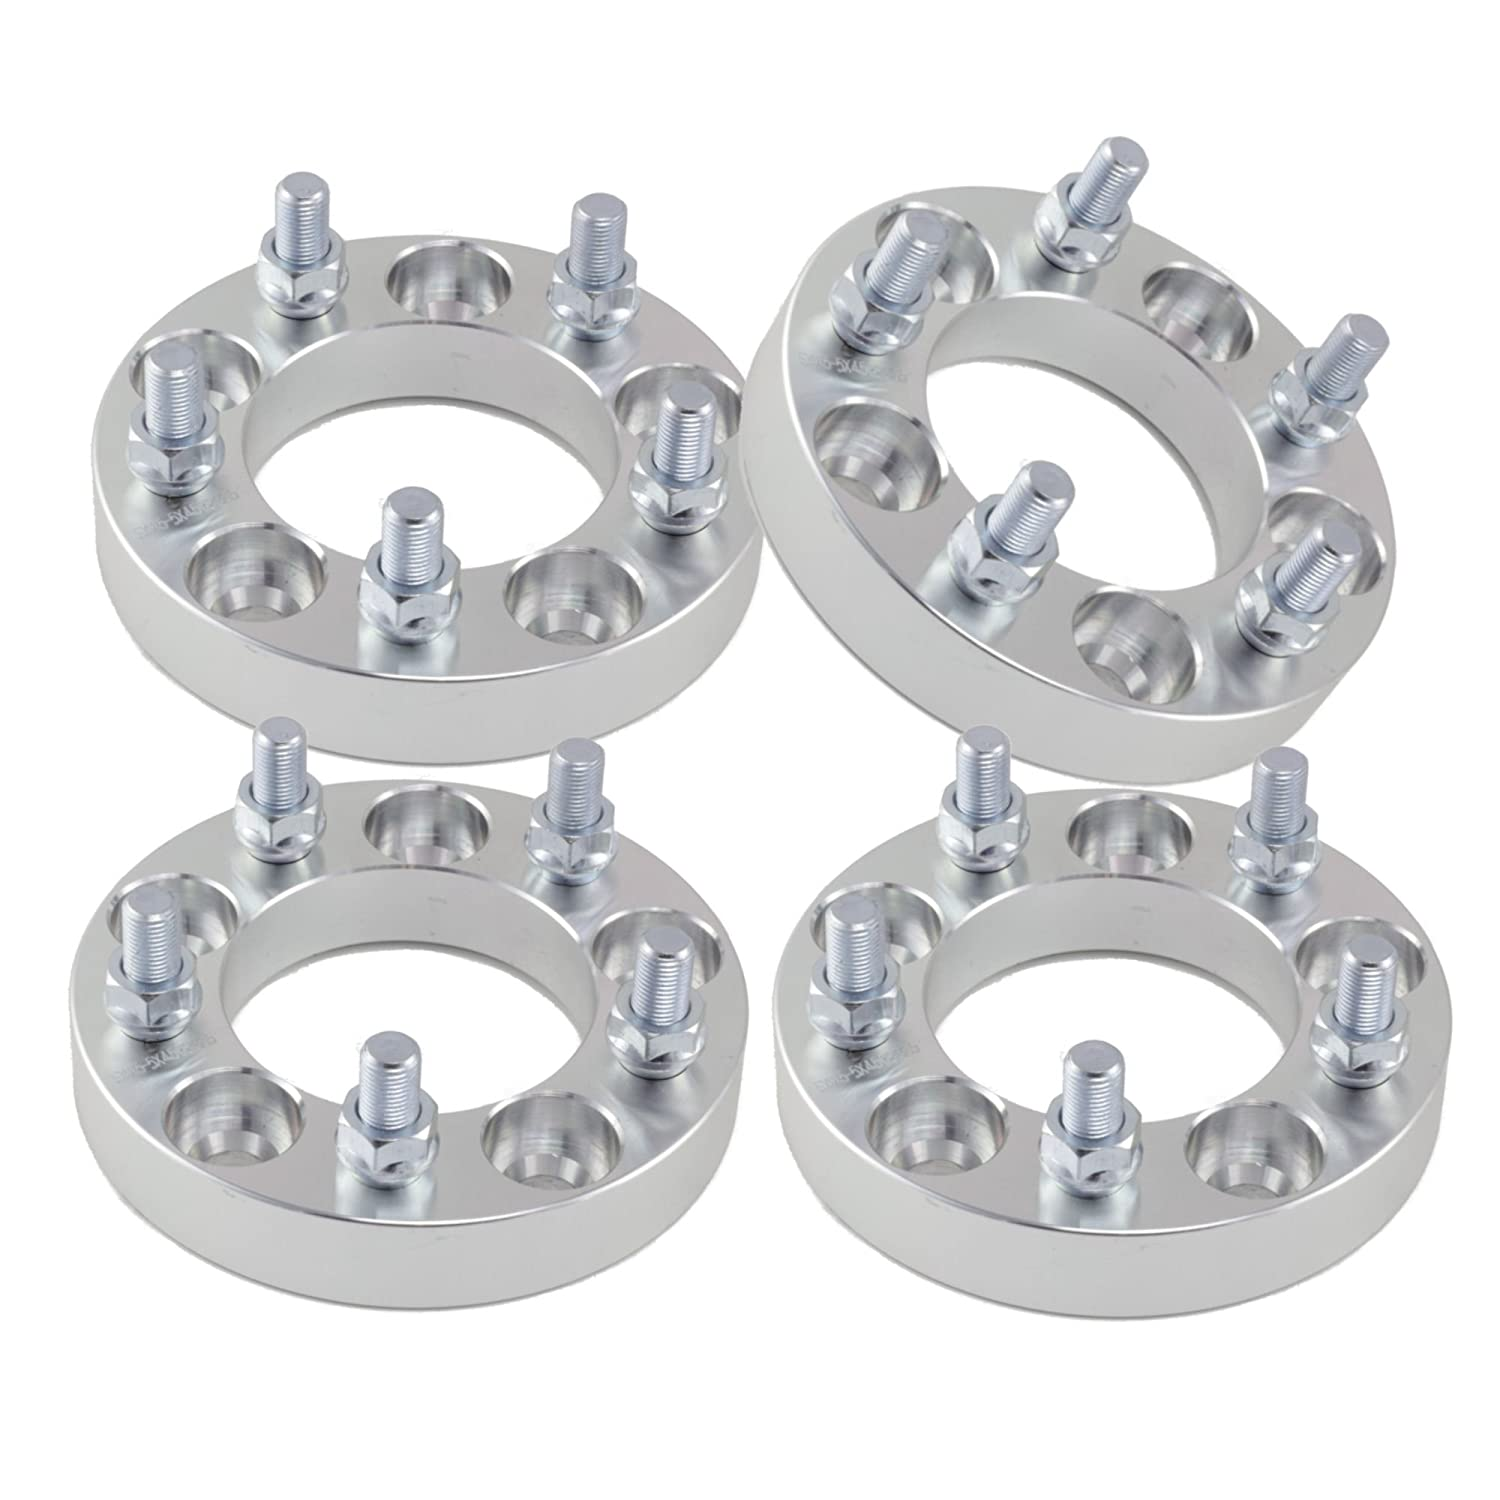 to 5x5 Wheel Adapters//Spacers 12x1.5 Studs 25mm 5x120.7 1 1.0 inch Thick | 5x4.75 4